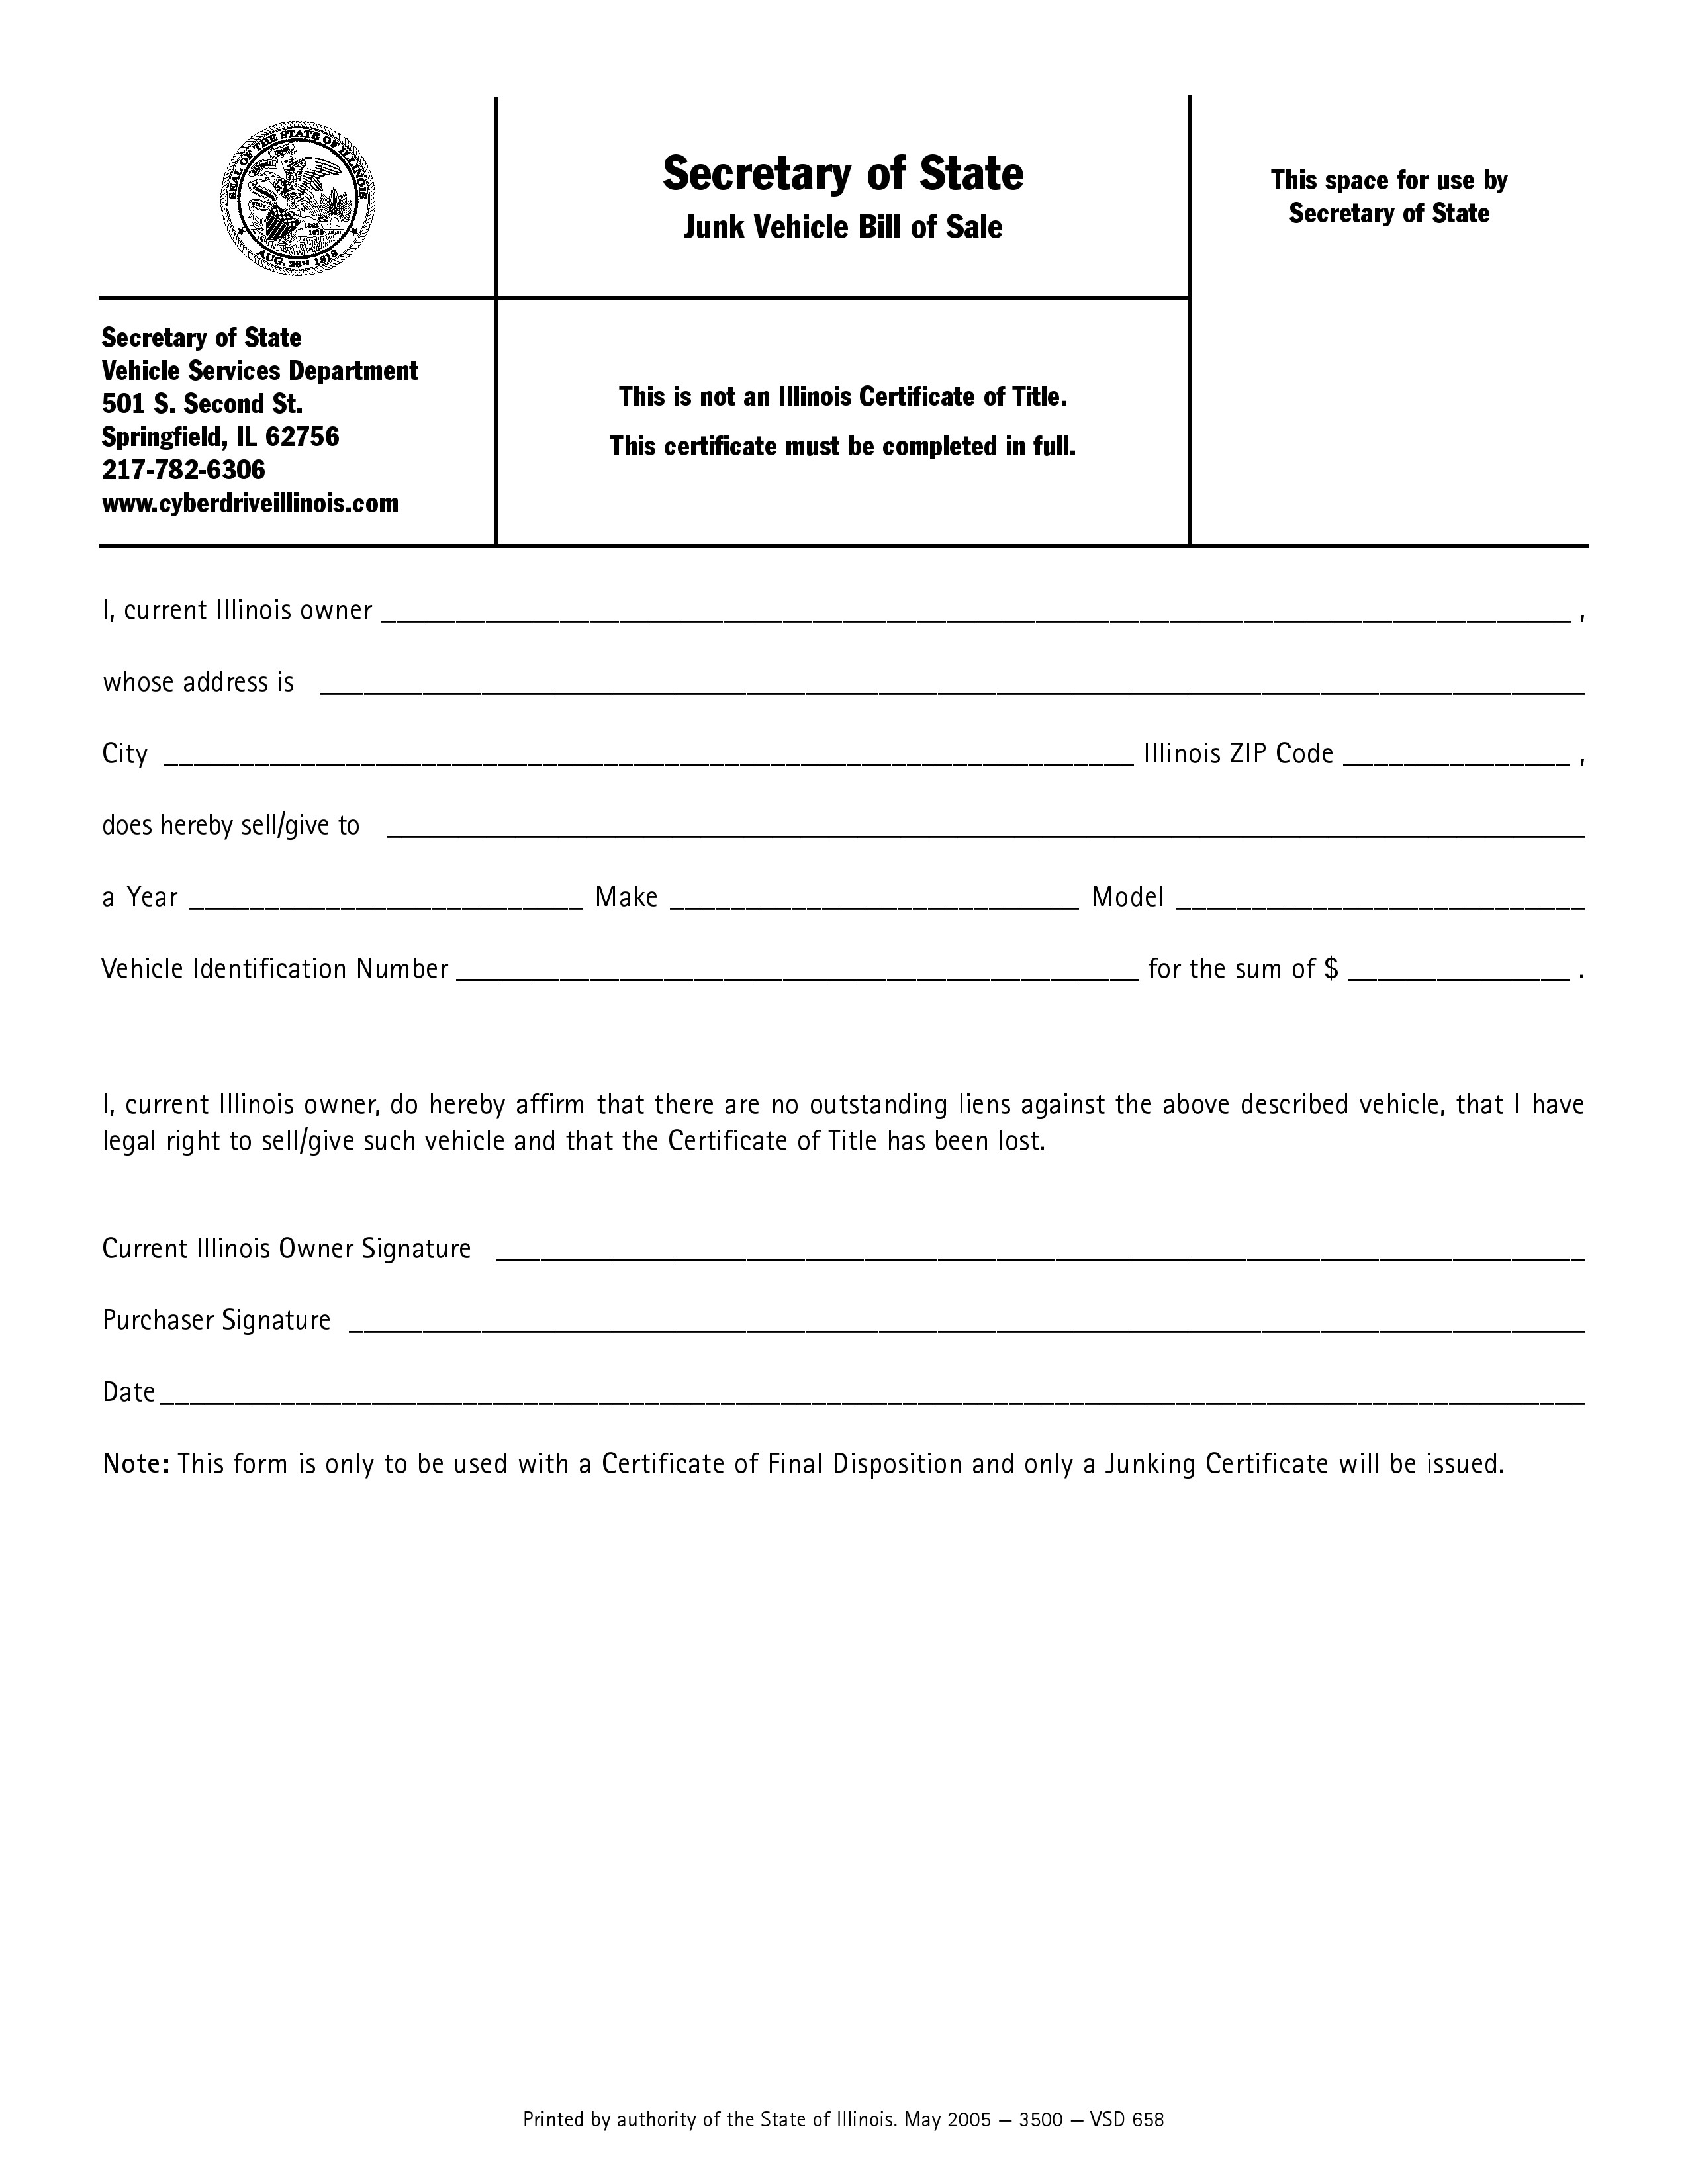 free illinois junk vehicle bill of sale form pdf word do it